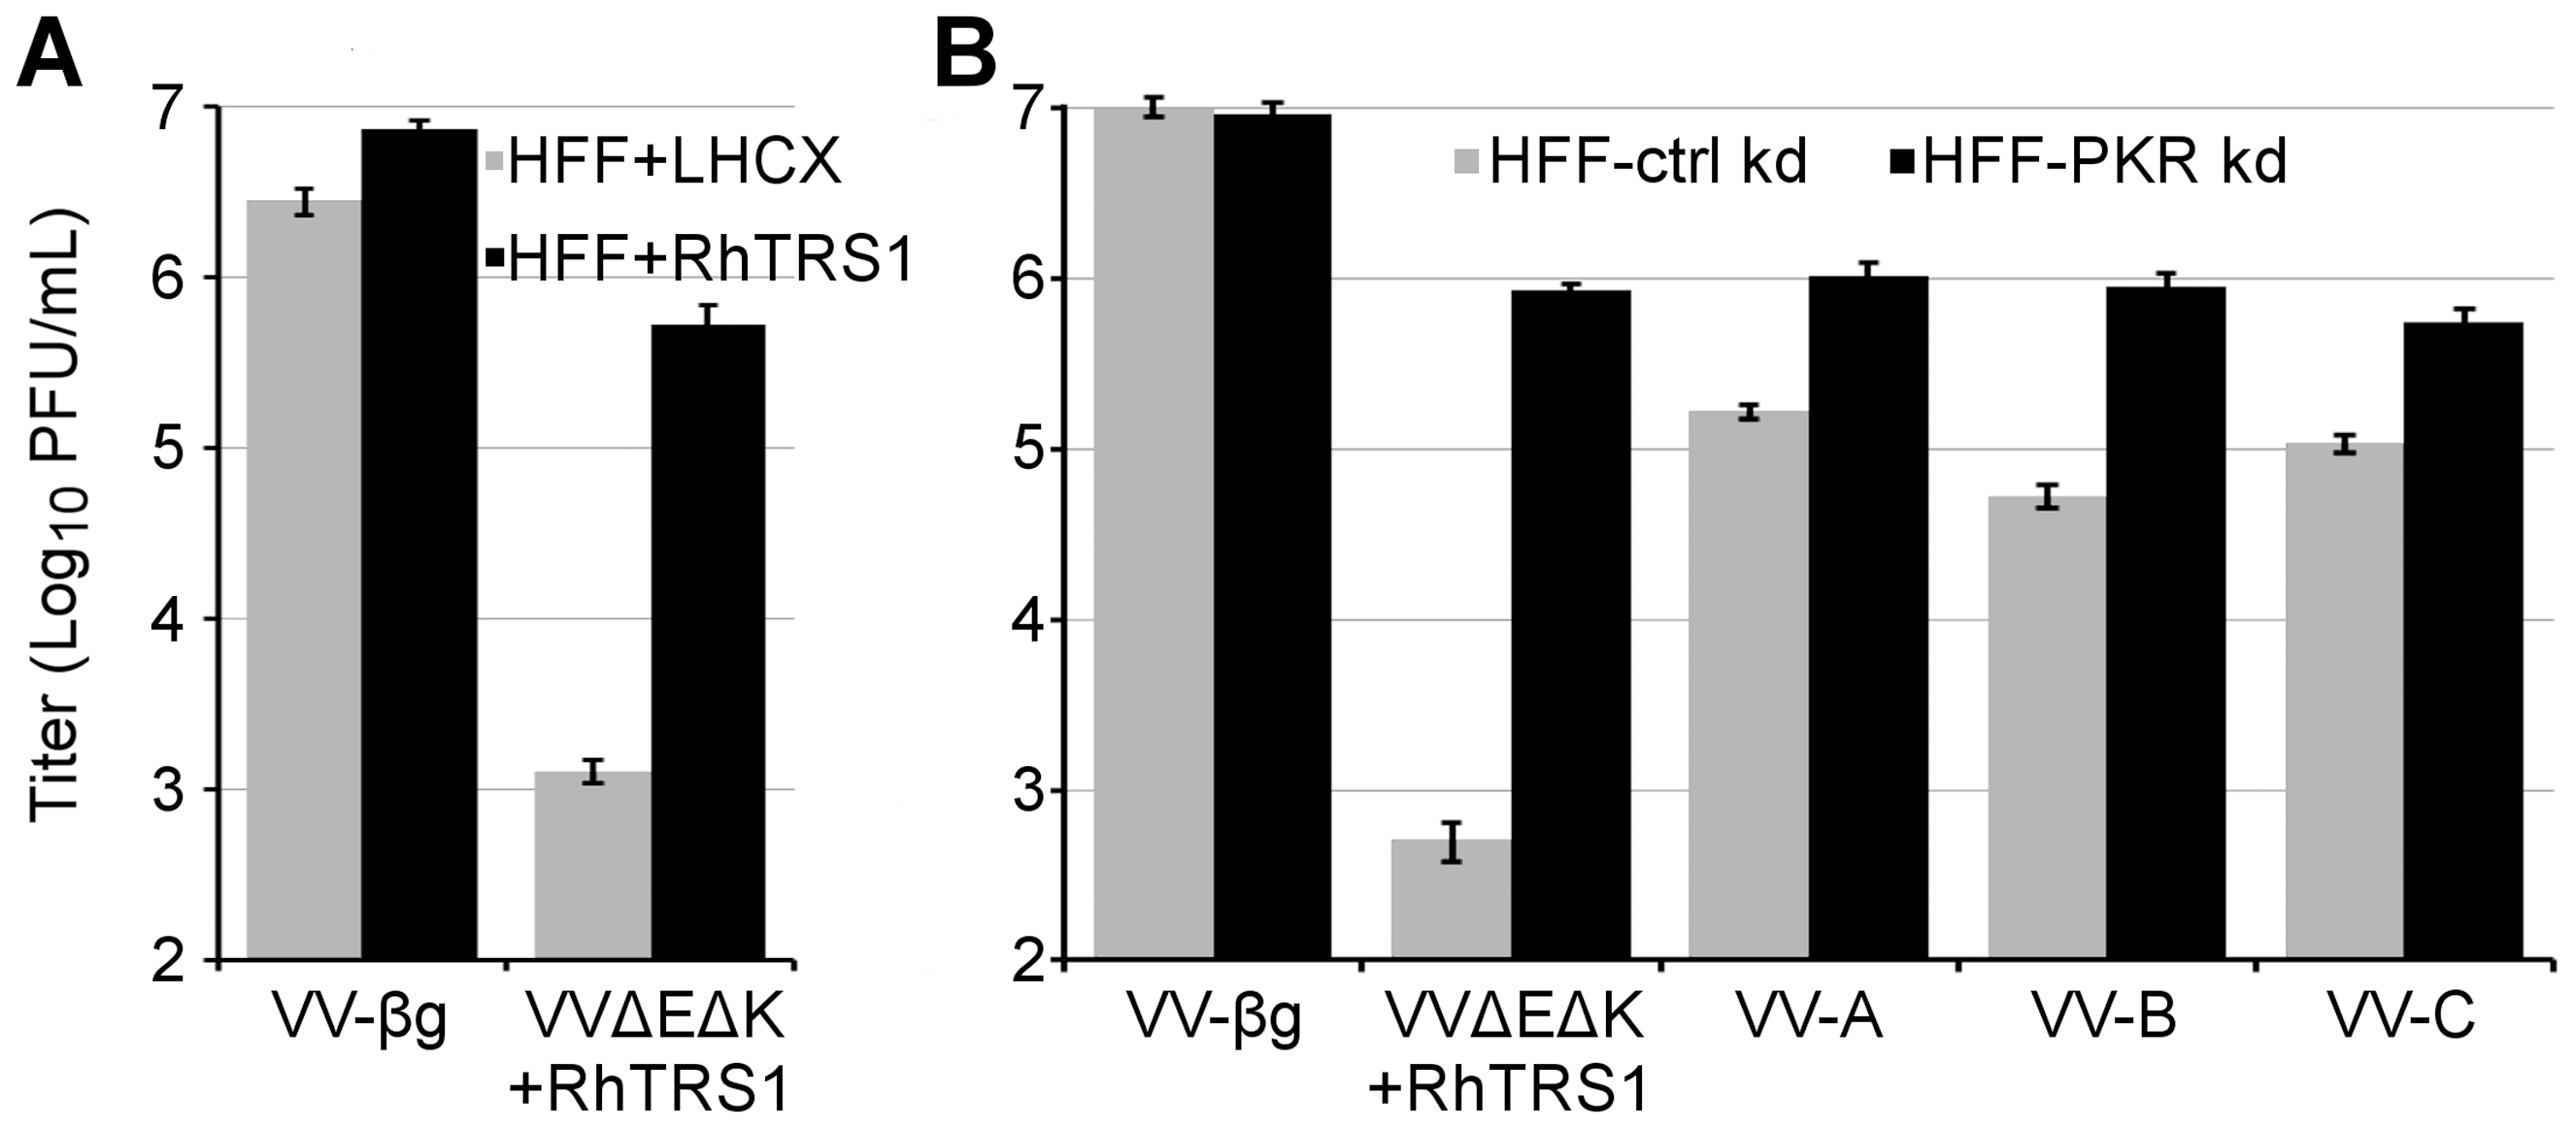 RhTRS1 overexpression or PKR knockdown permits efficient VVΔEΔK+RhTRS1 replication in HFF.